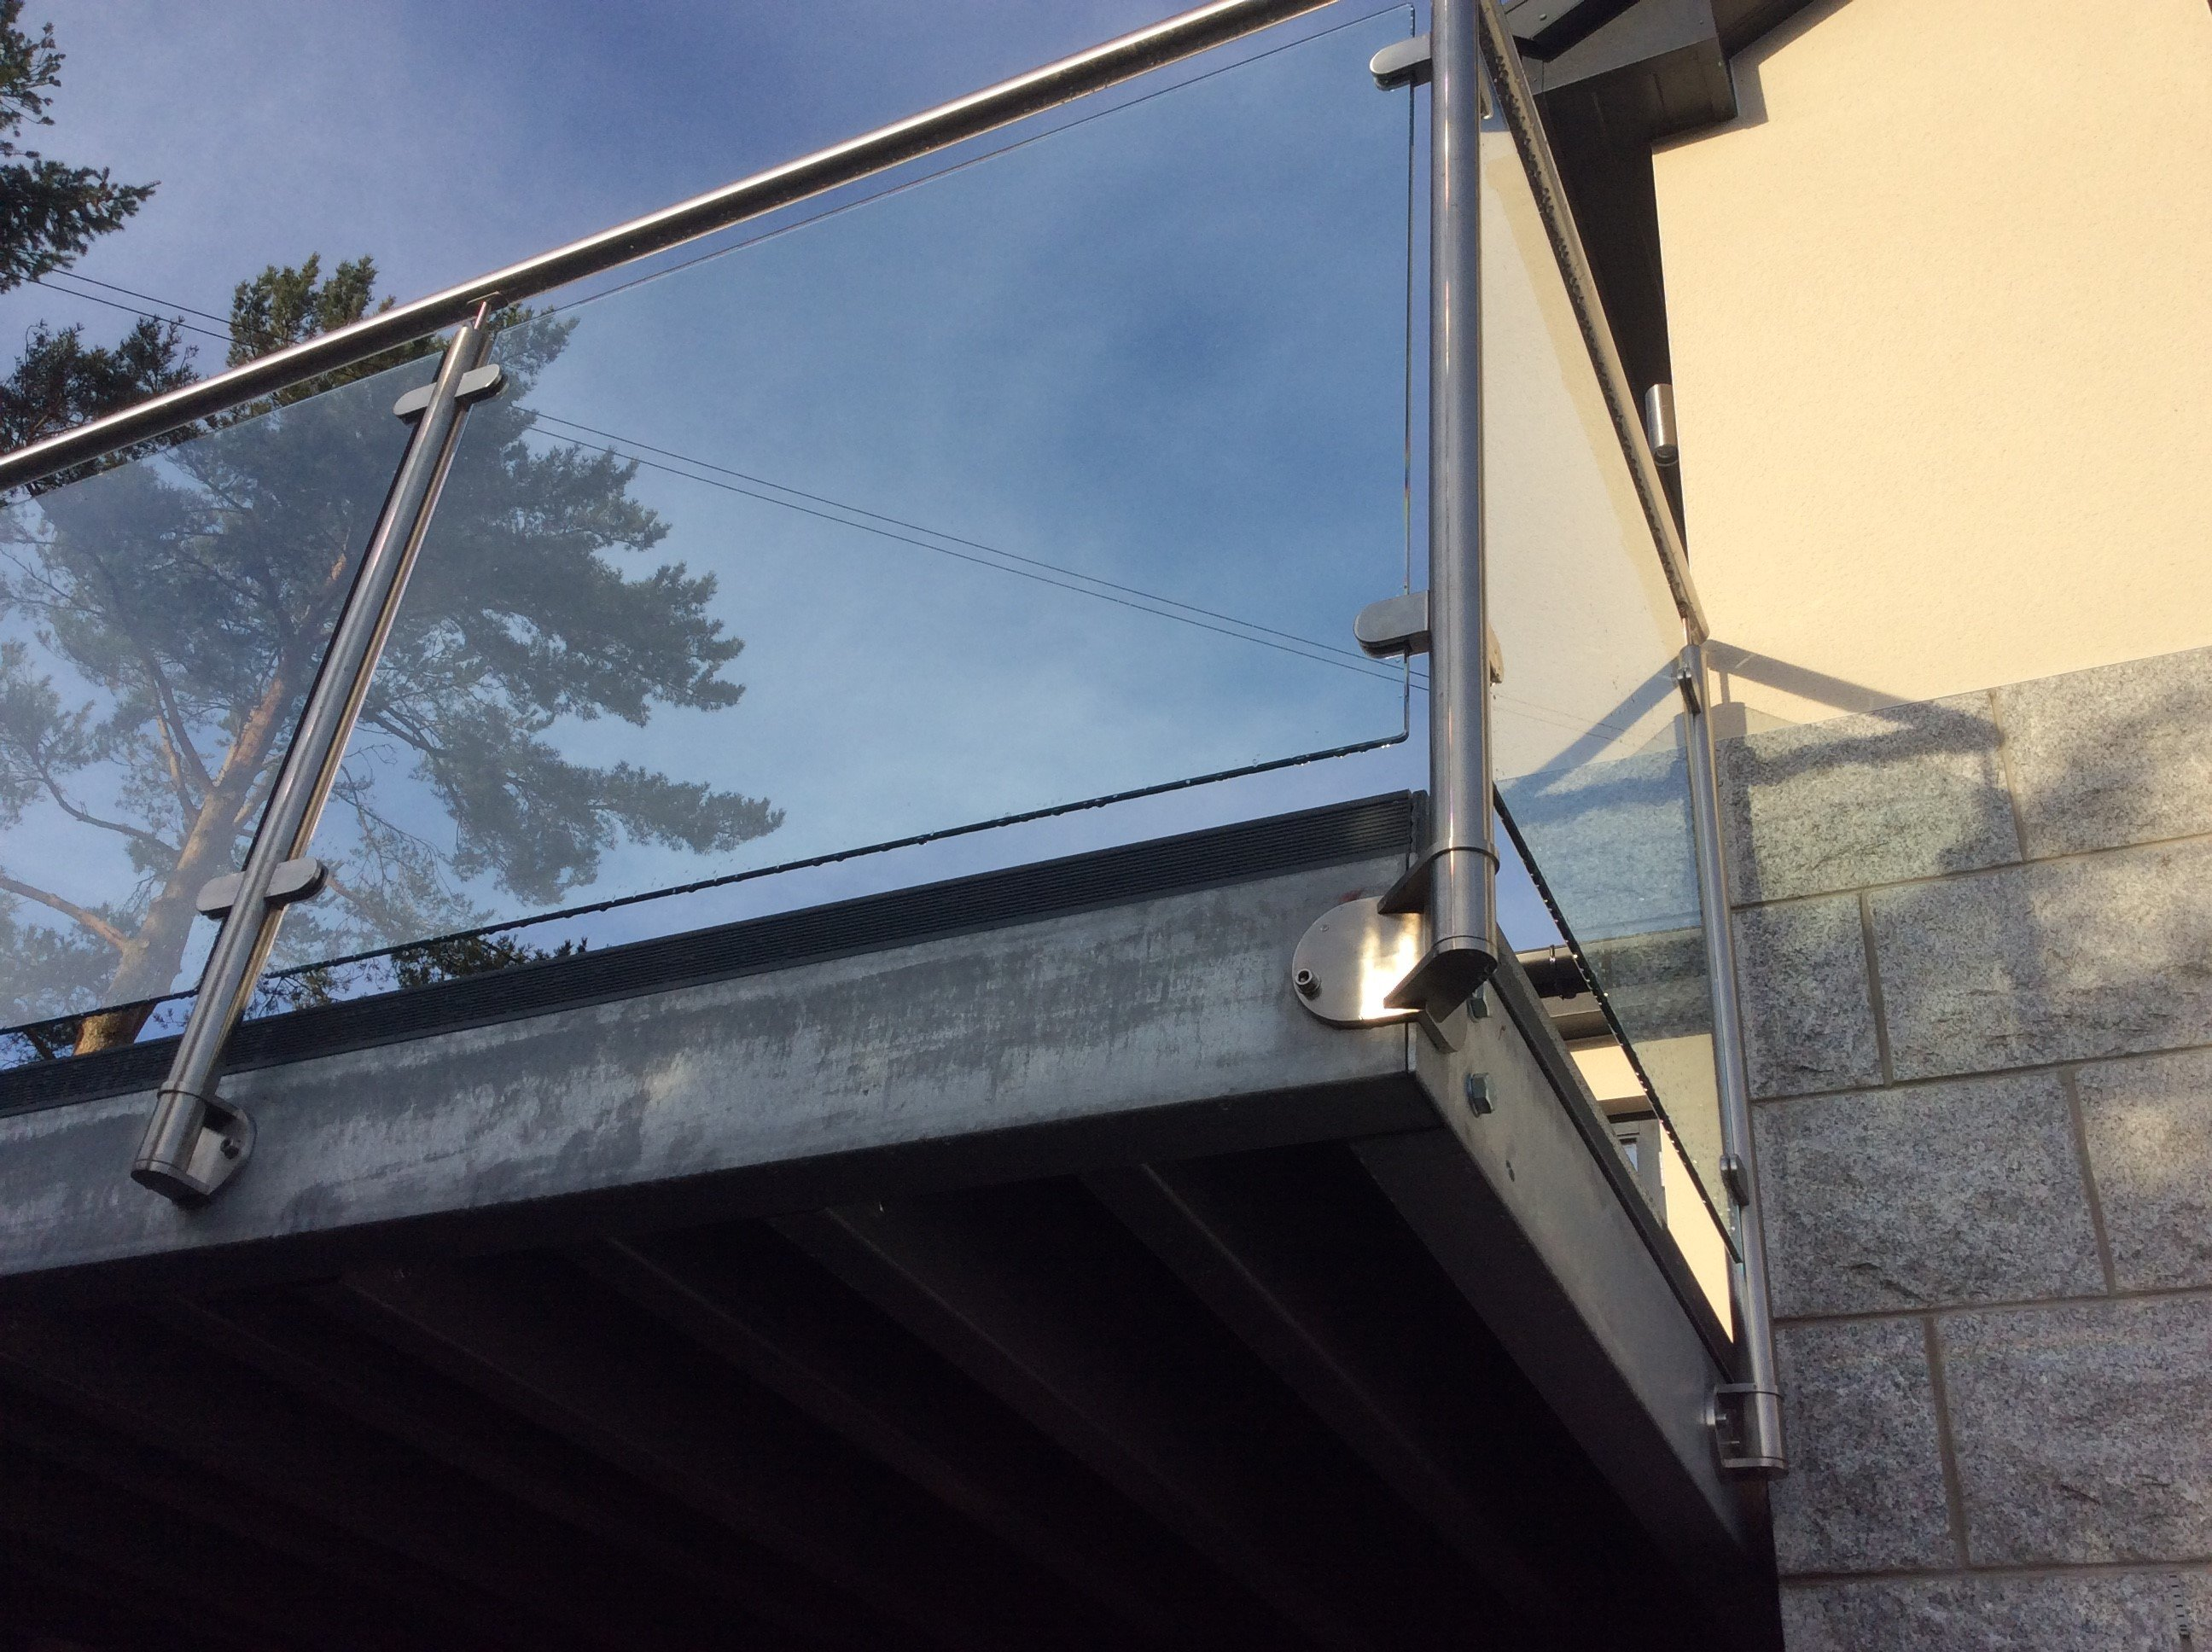 Stainless Steel Balcony Balustrade/Handrail - Bespoke